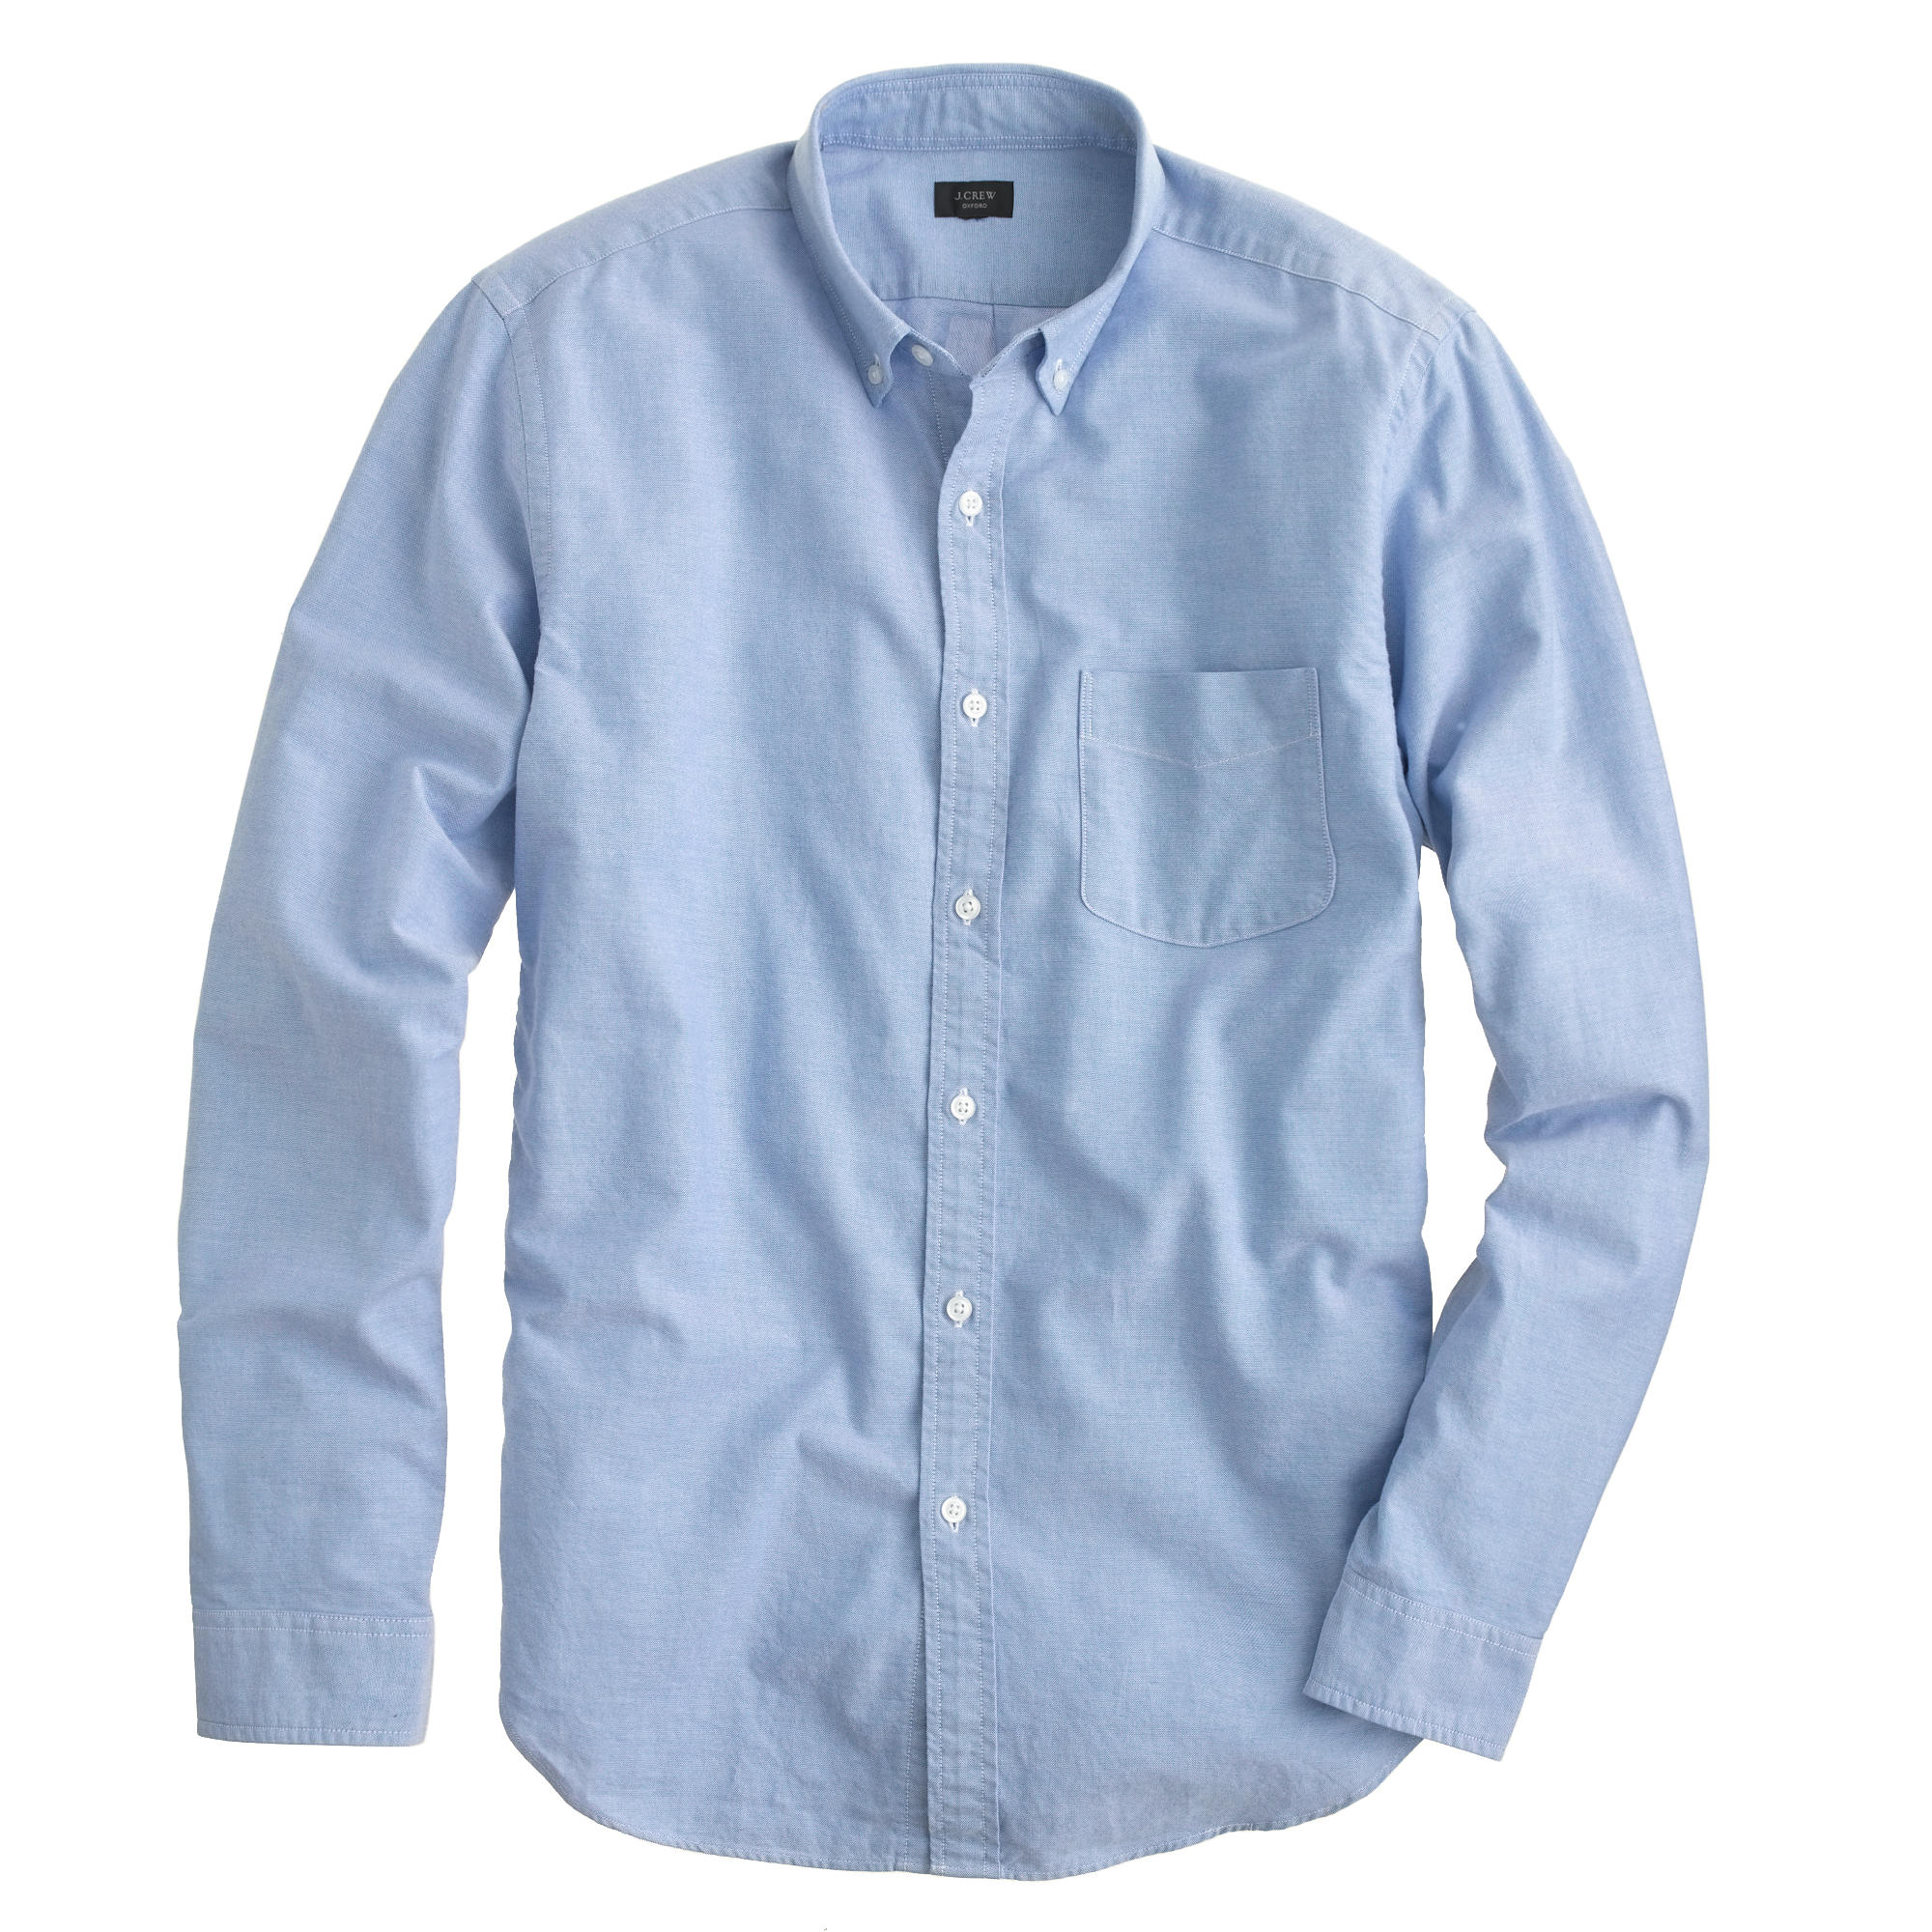 Target Work Shirts J Crew Vintage Oxford Shirt In Blue For Men Rustic Blue